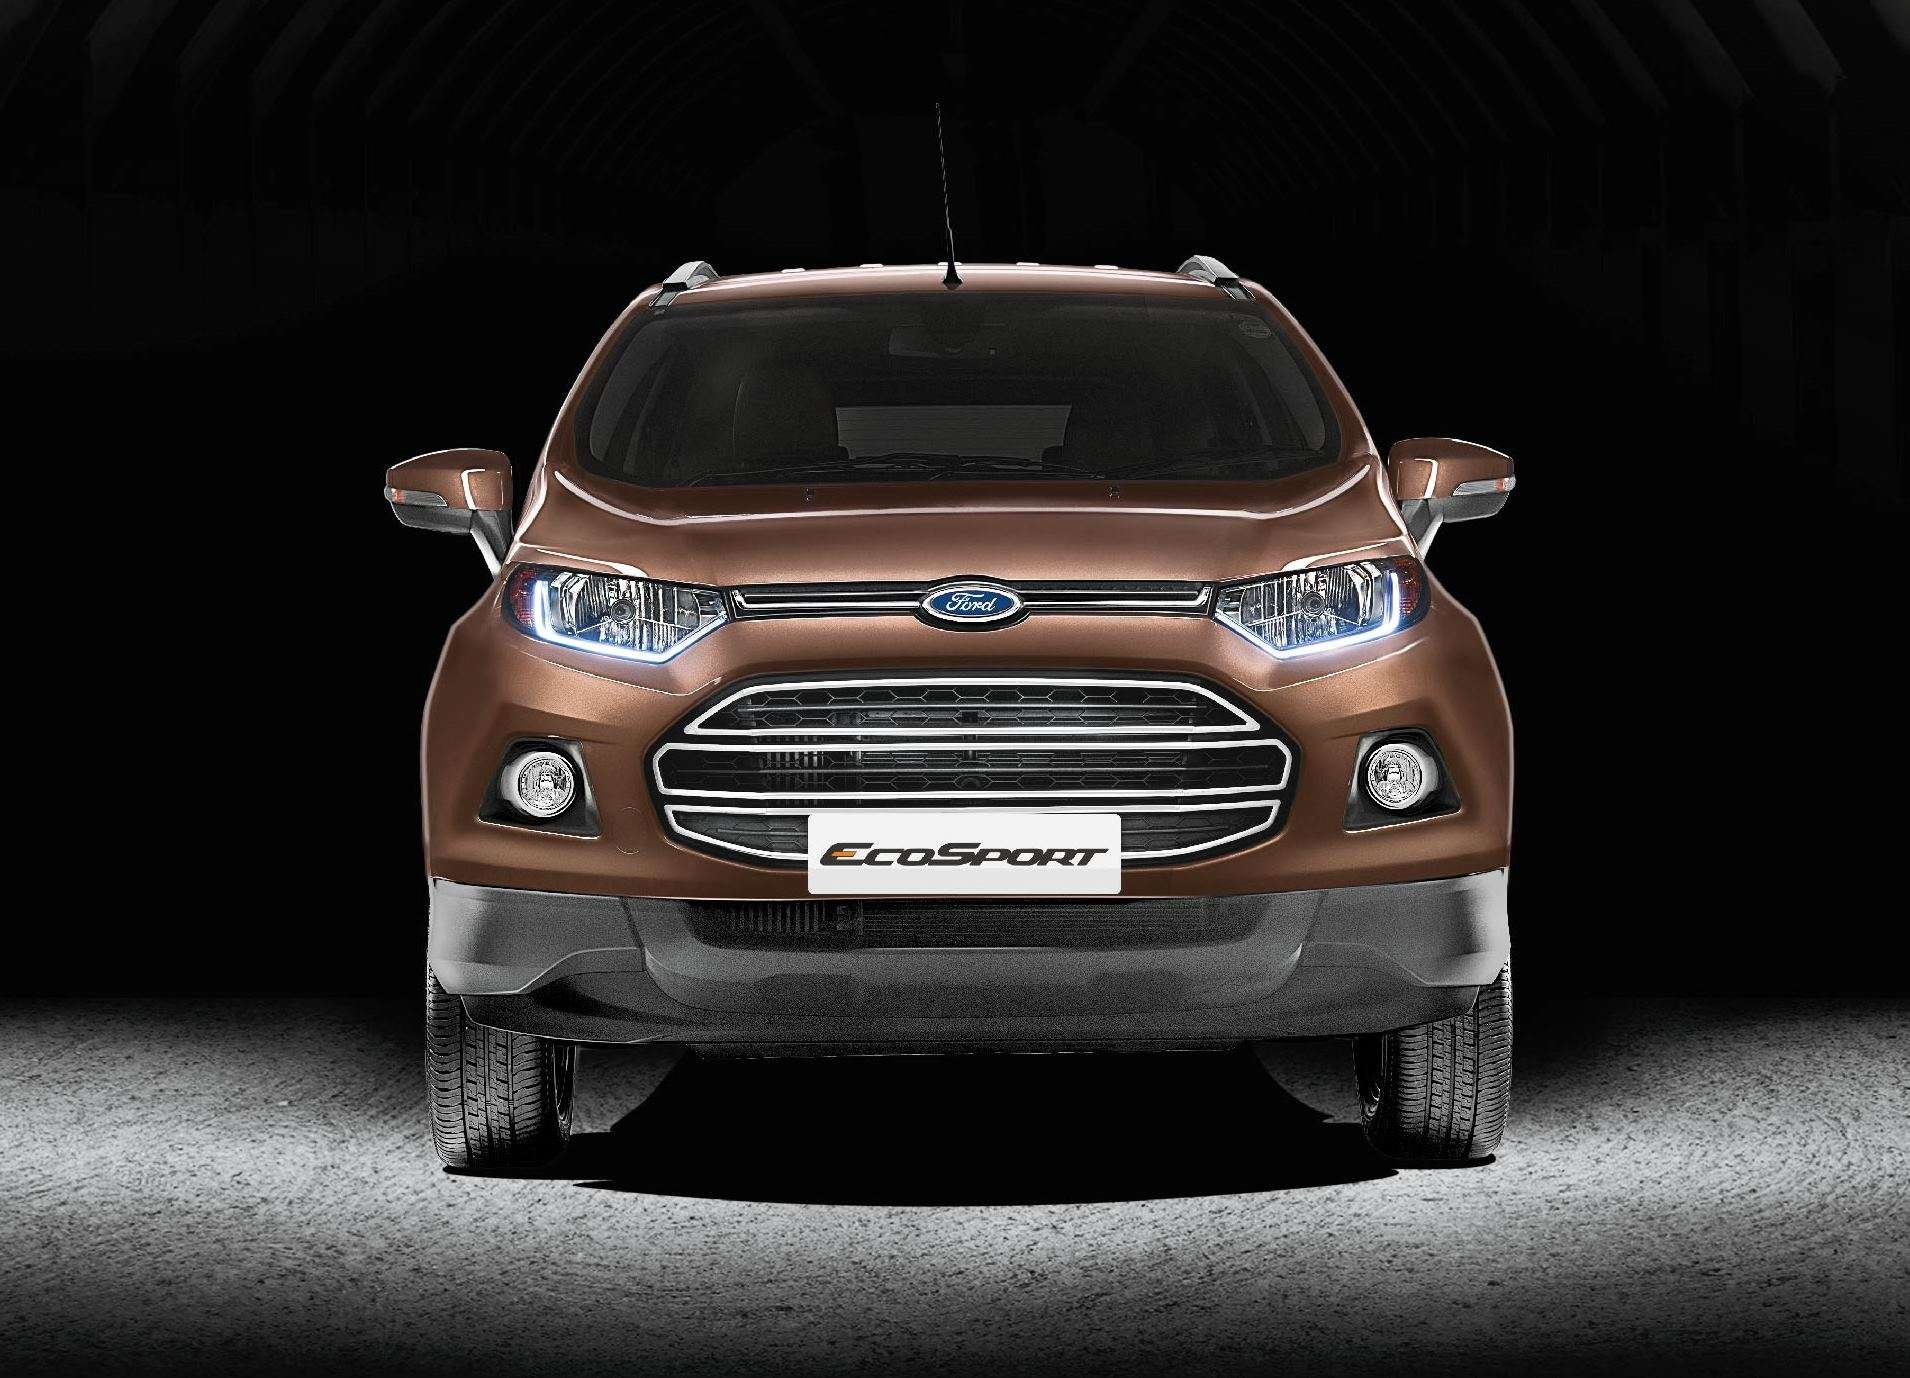 New ford ecosport launched with a price hike of rs 5k to 20k approx